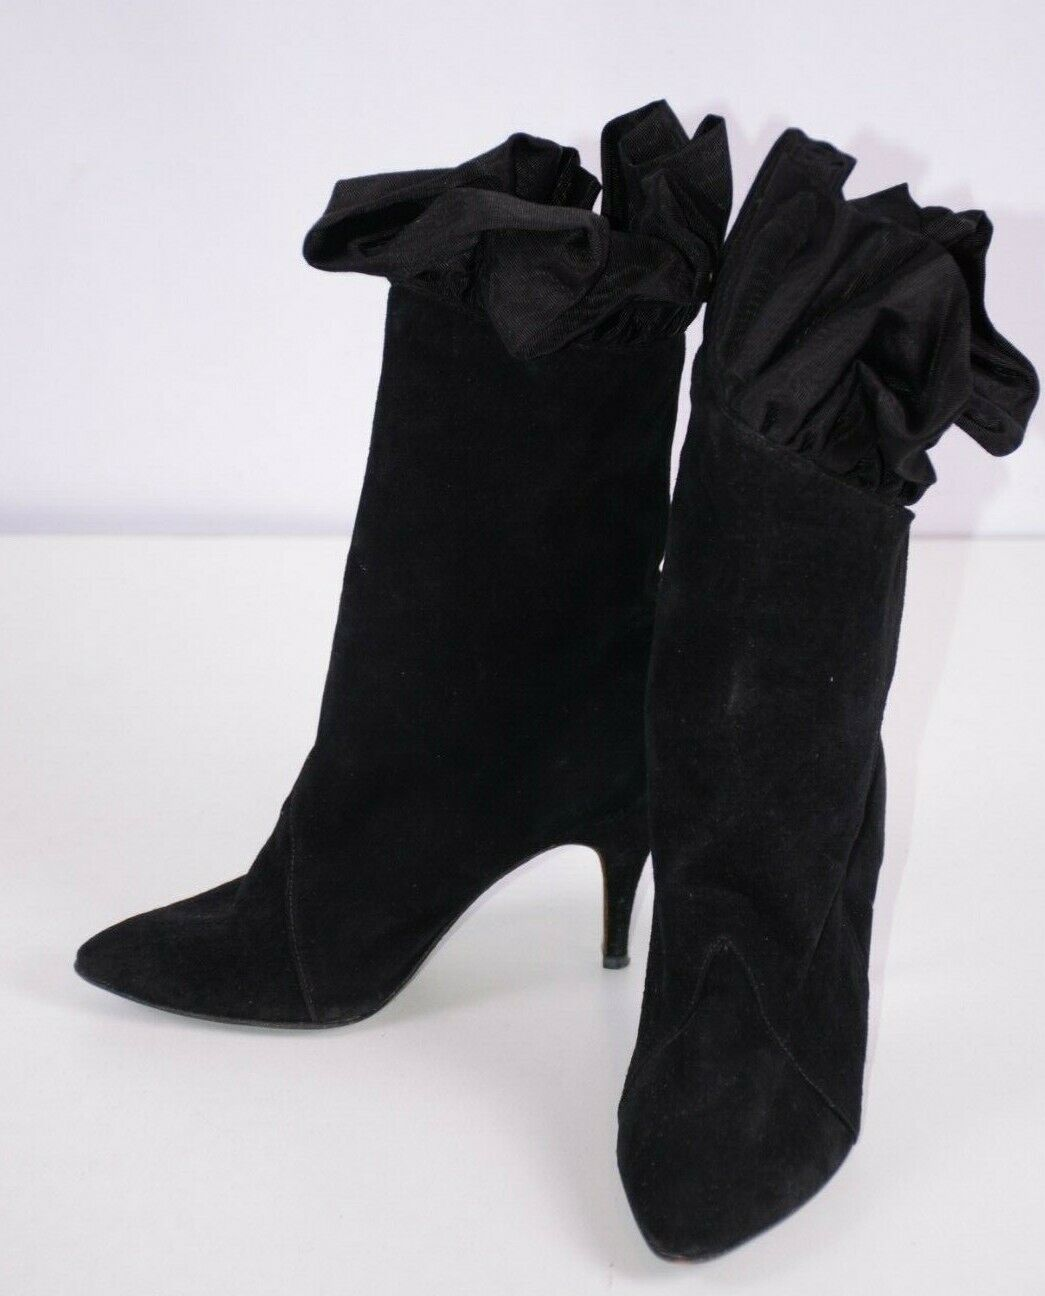 Giorgio Beverly Hills Women's Ankle Booties Sz 7 Black Suede Fringed Boho Party